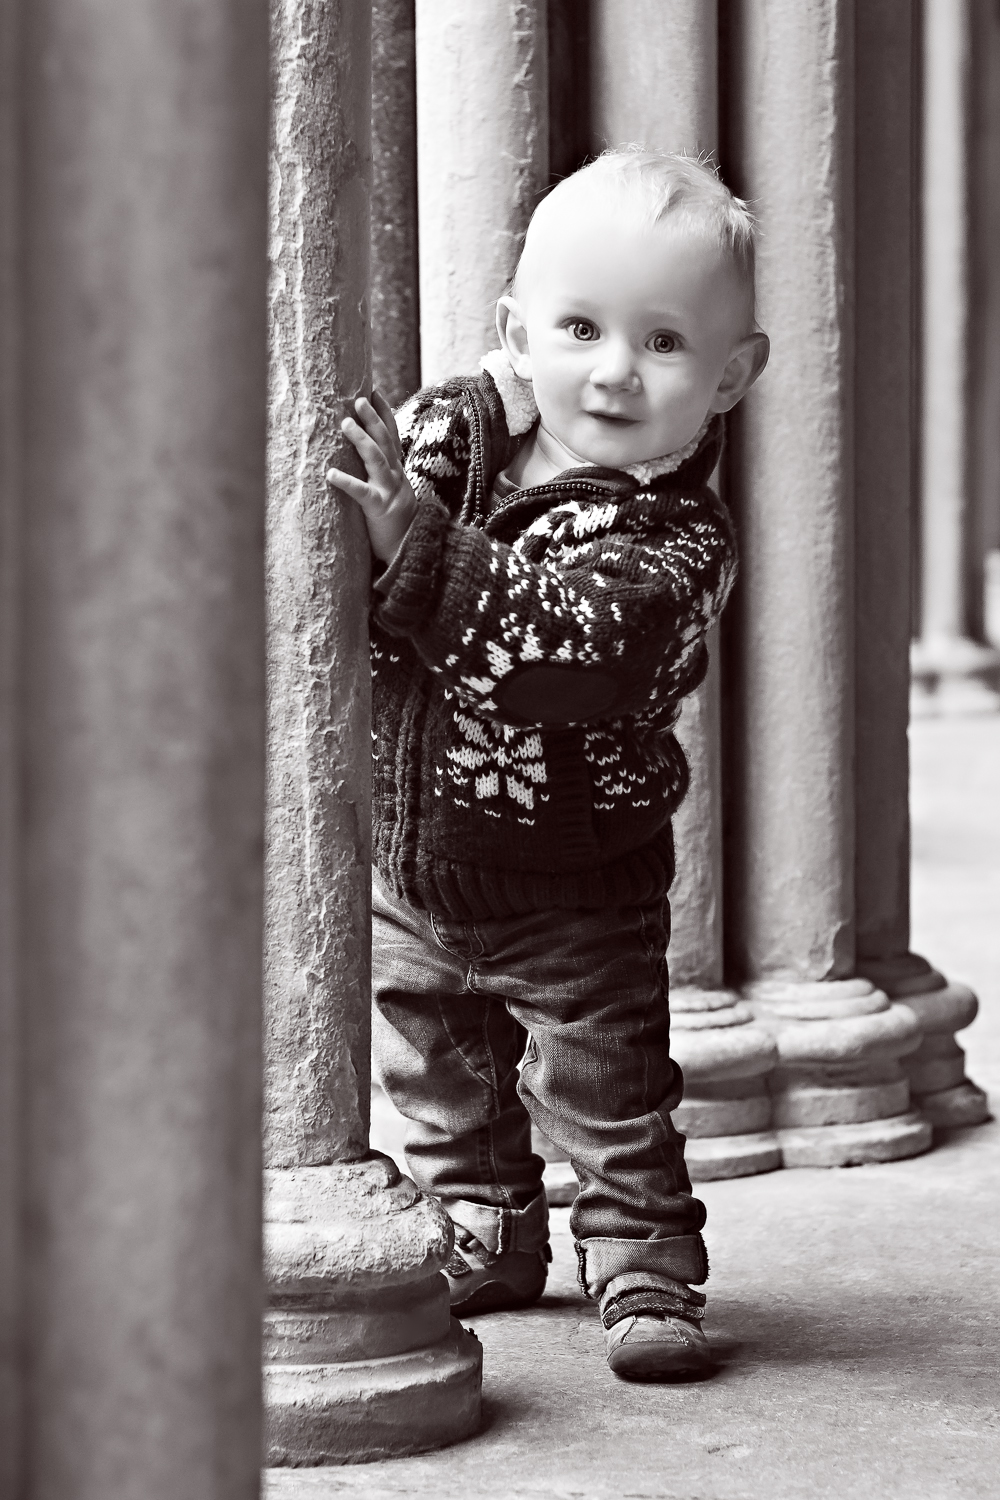 Black and white photograph of a little boy peaking his head around one of the cloisters at Salisbury Cathedral grounds